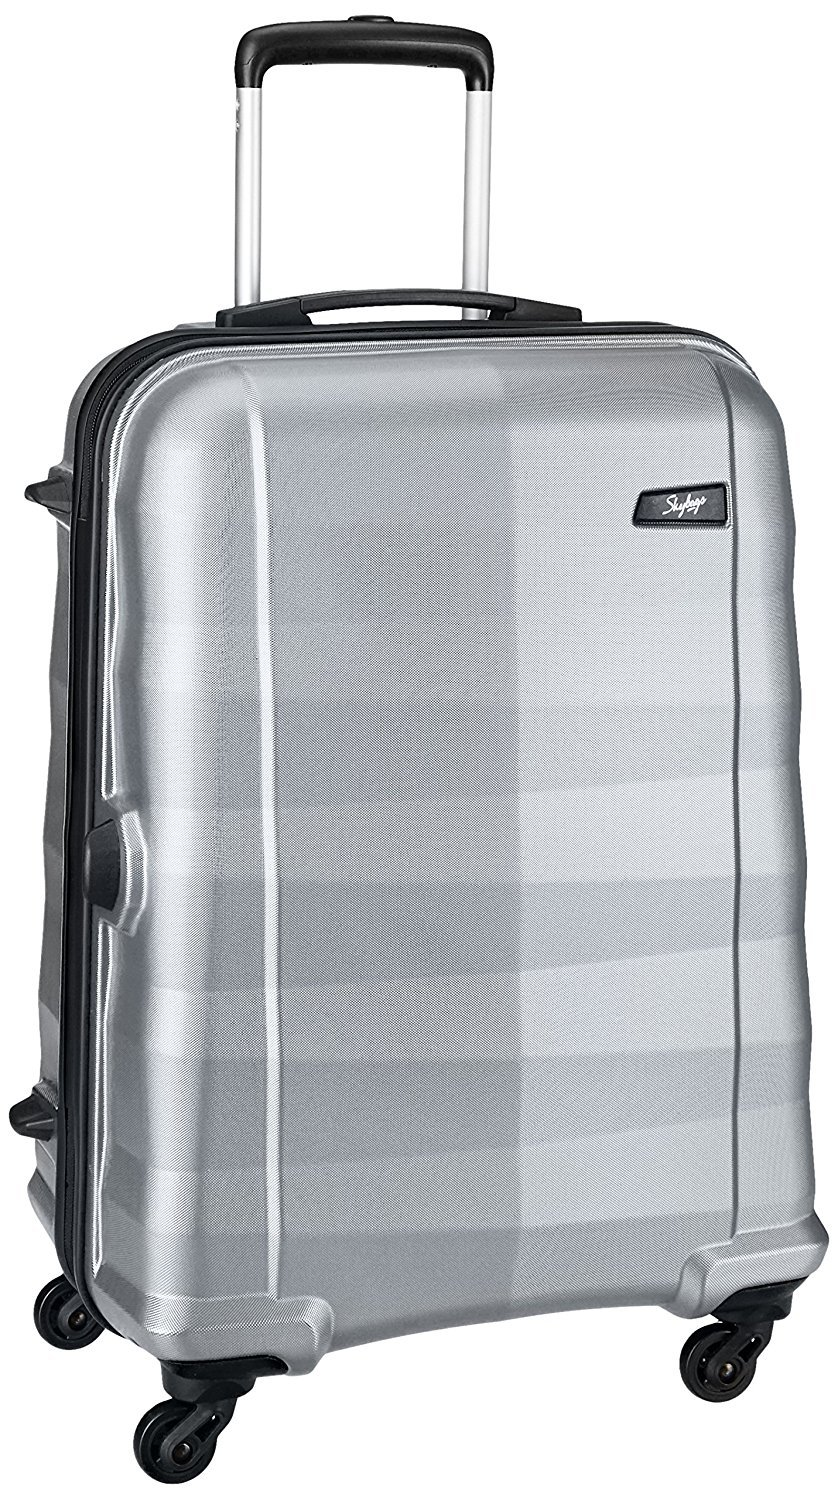 Skybags Auckland Polycarbonate 65.8 Cms Silver Hardsided